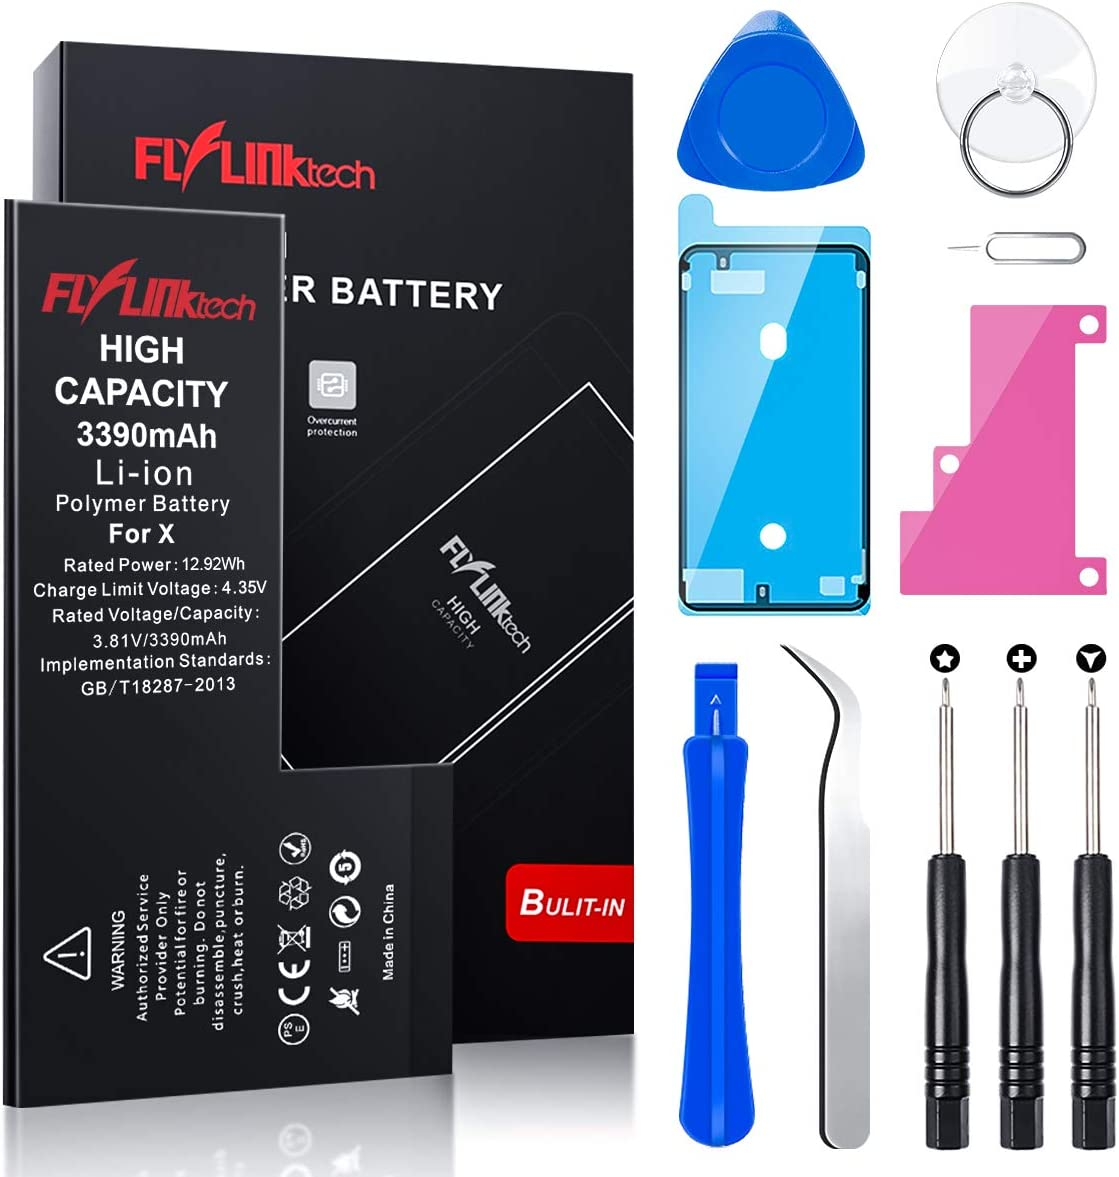 Flylinktech Battery for iPhone X 3390mAh High Capacity Li-ion Polymer fit iPhone X Battery with All Repair Replacement Kit Tools